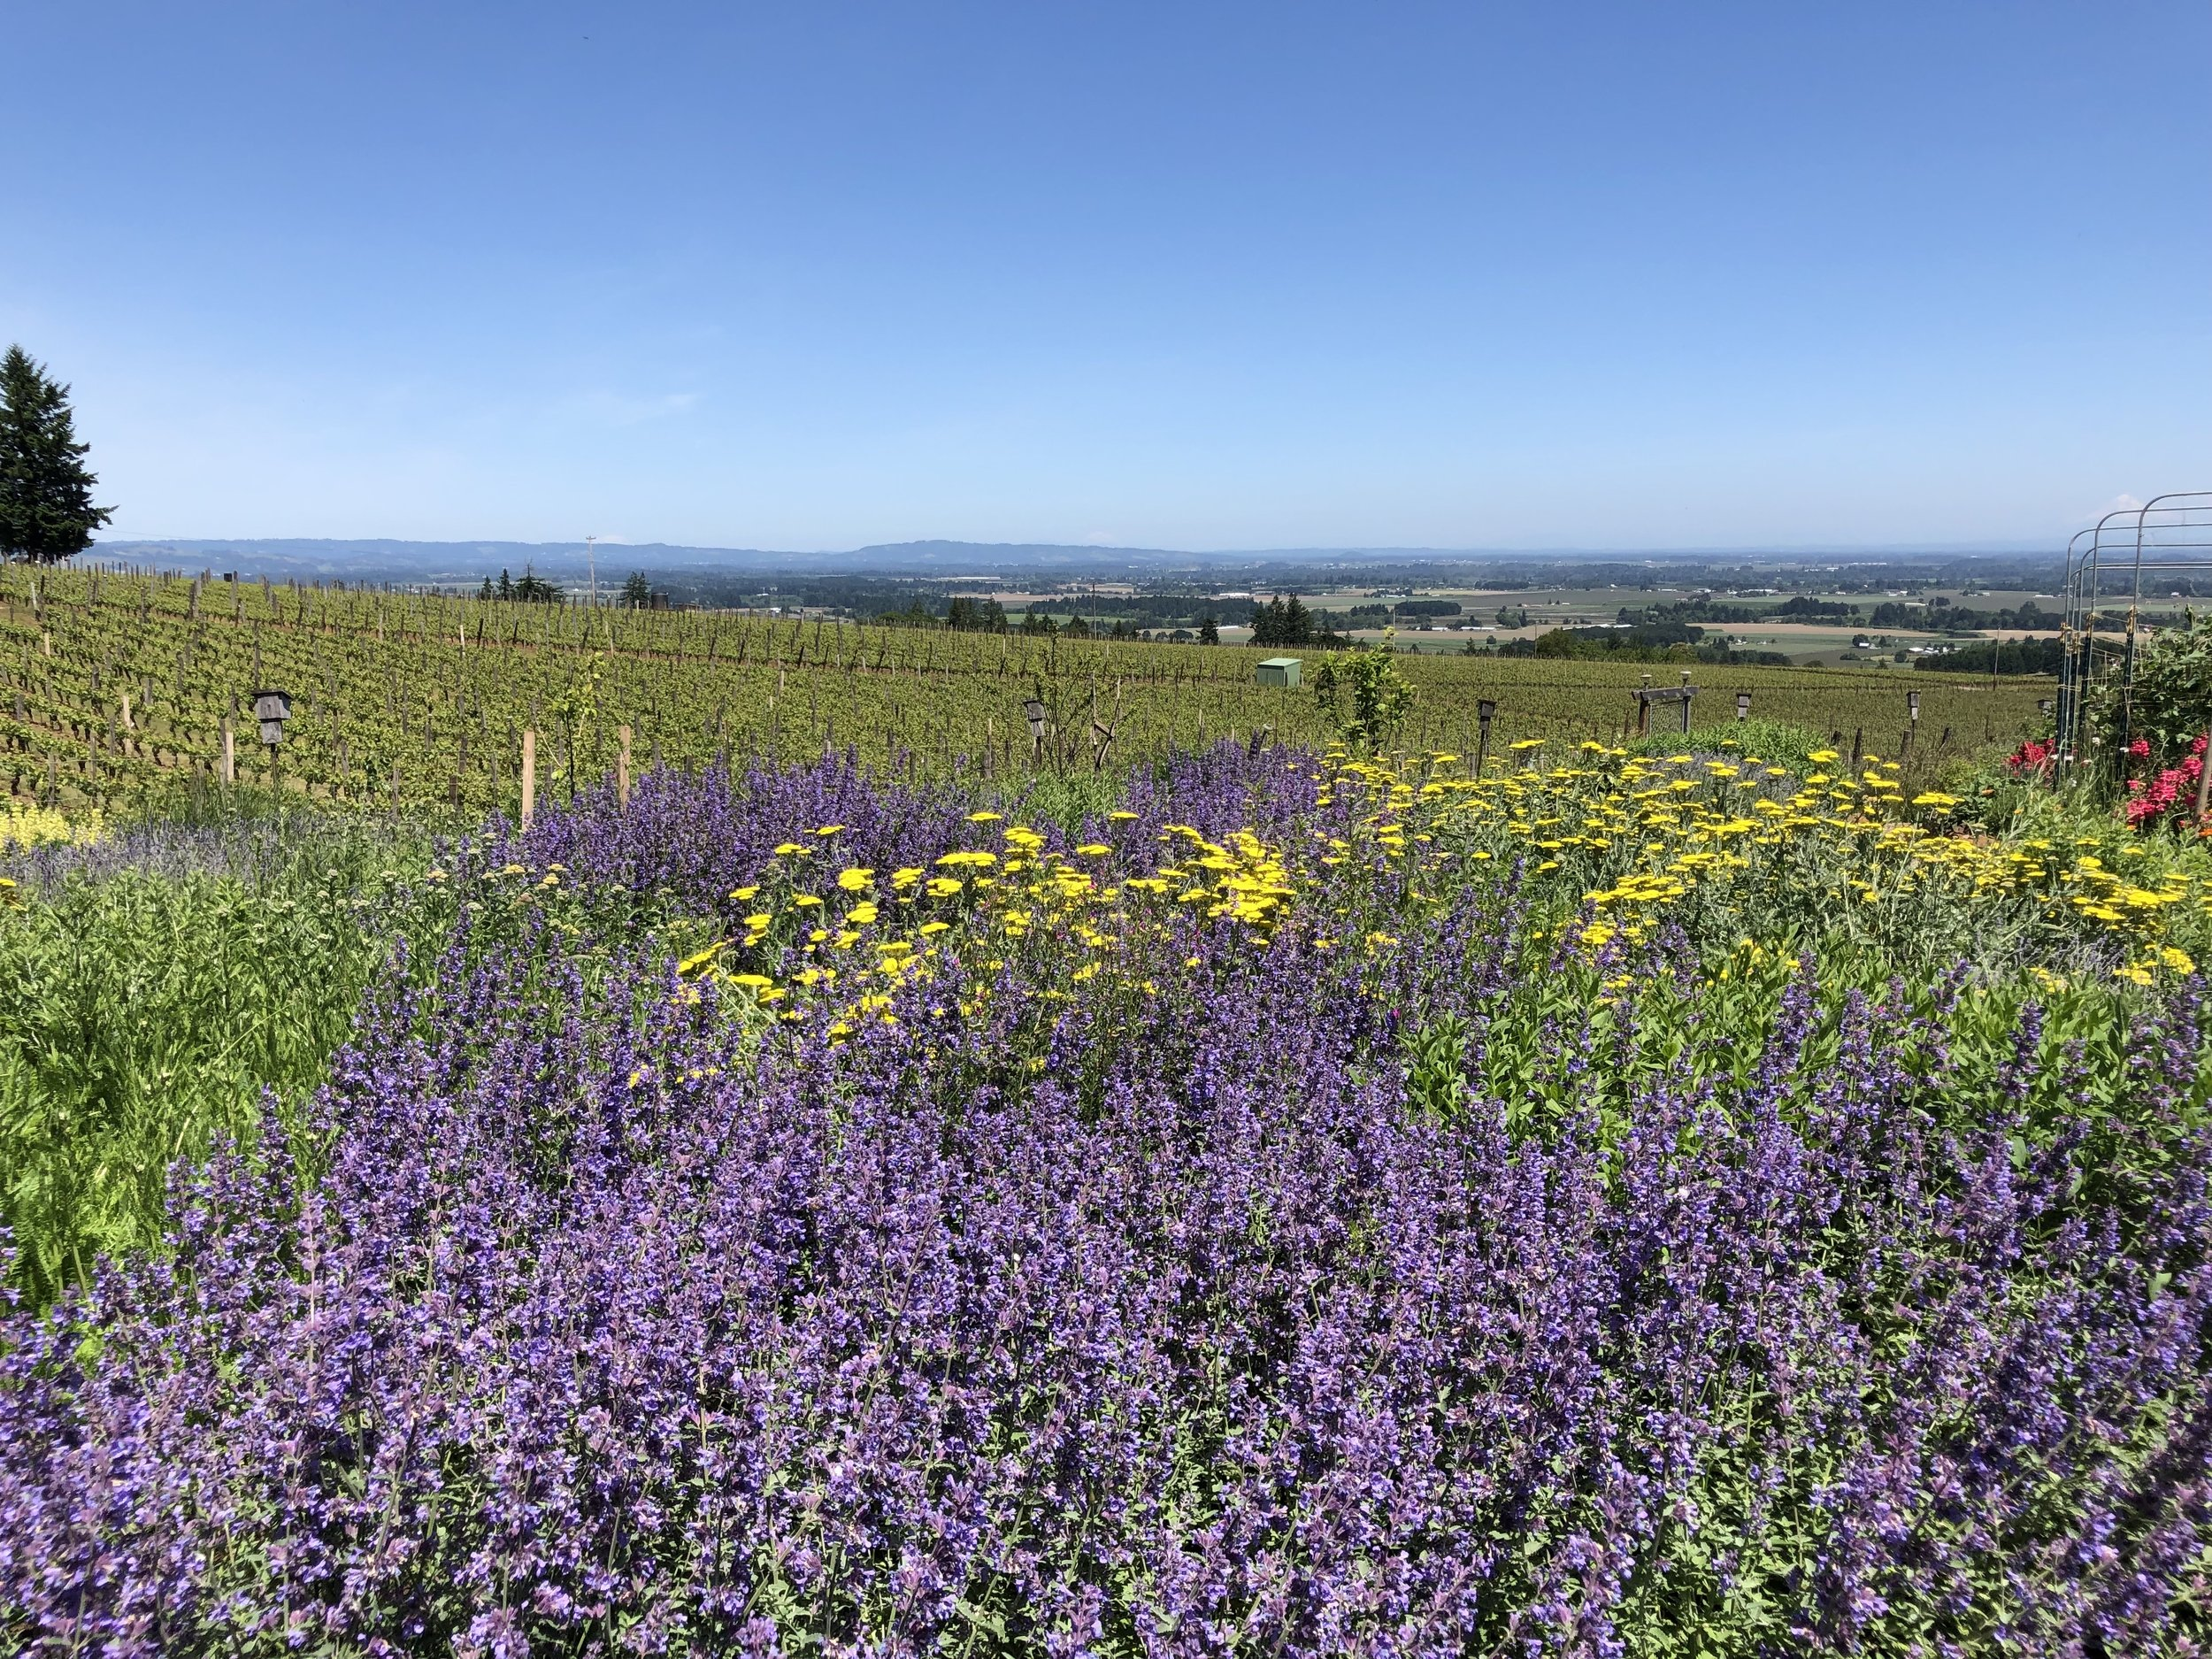 Winery and wildflowers